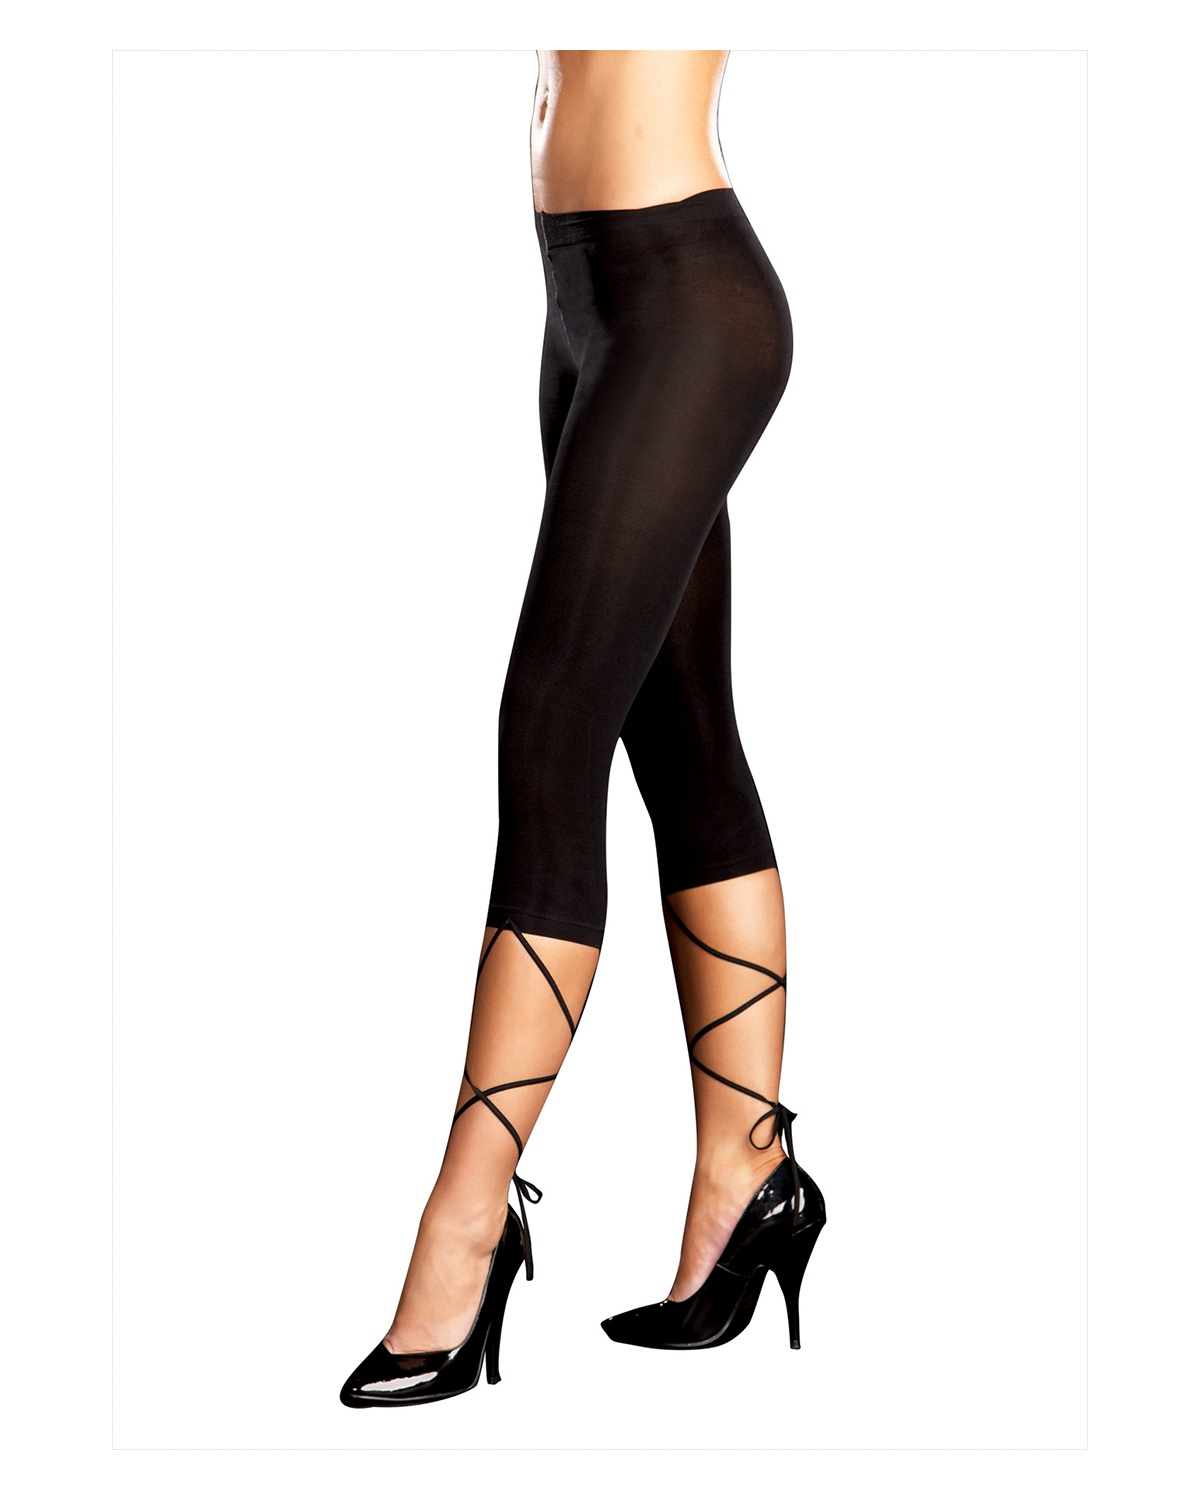 'Dreamgirl RL0067SD Lace Down Legging S/M Size 2-8'